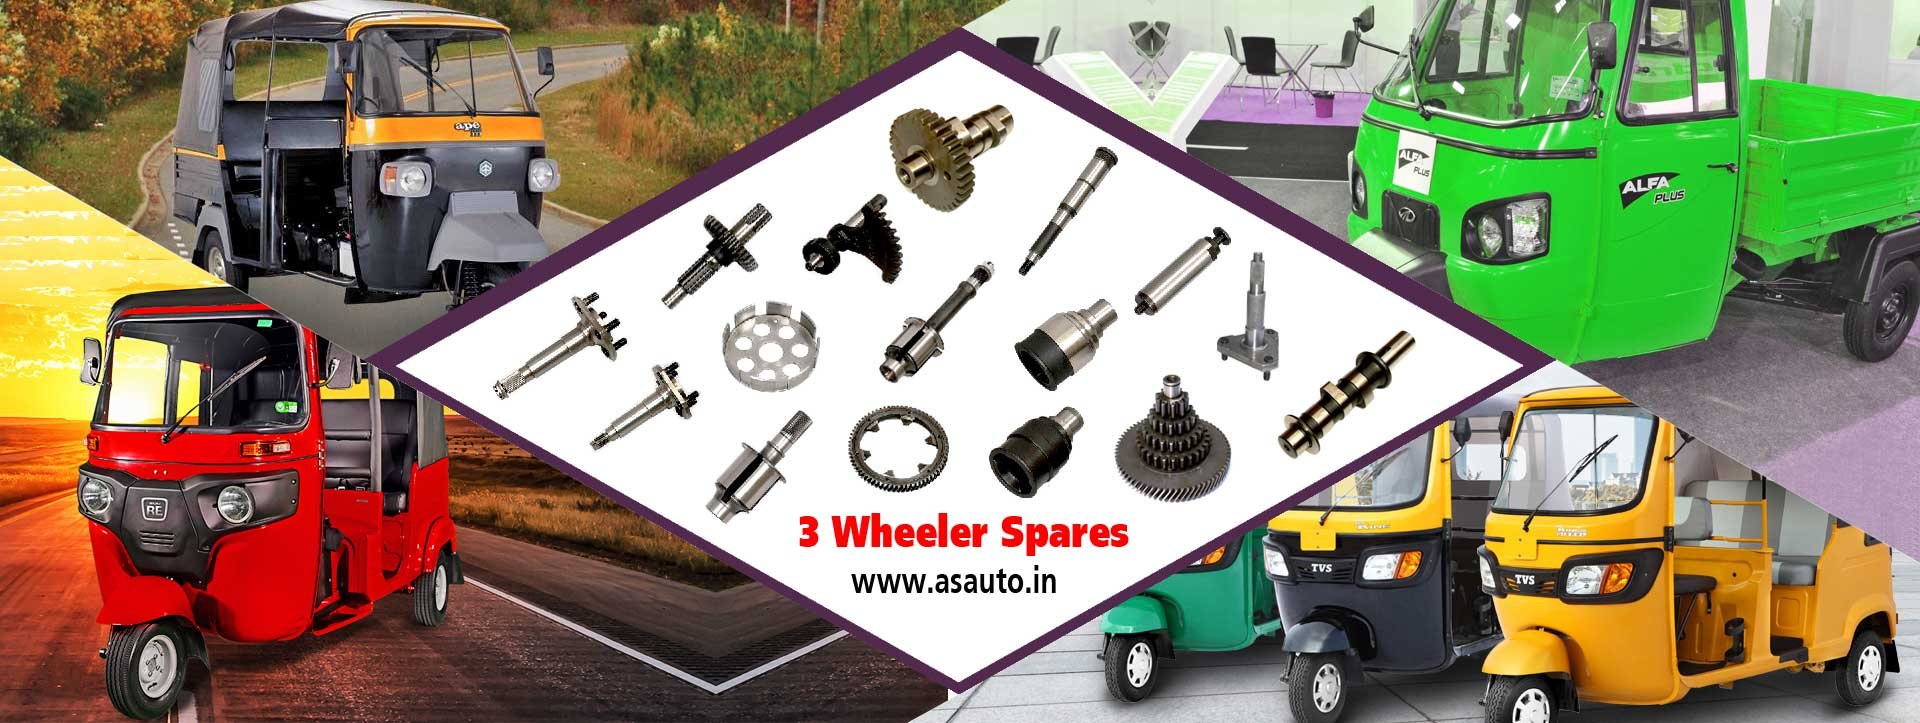 3 wheeeler auto parts three wheeler spare parts lpg cng 3 wheeler parts manufacturers suppliers distributors in india punjab ludhiana